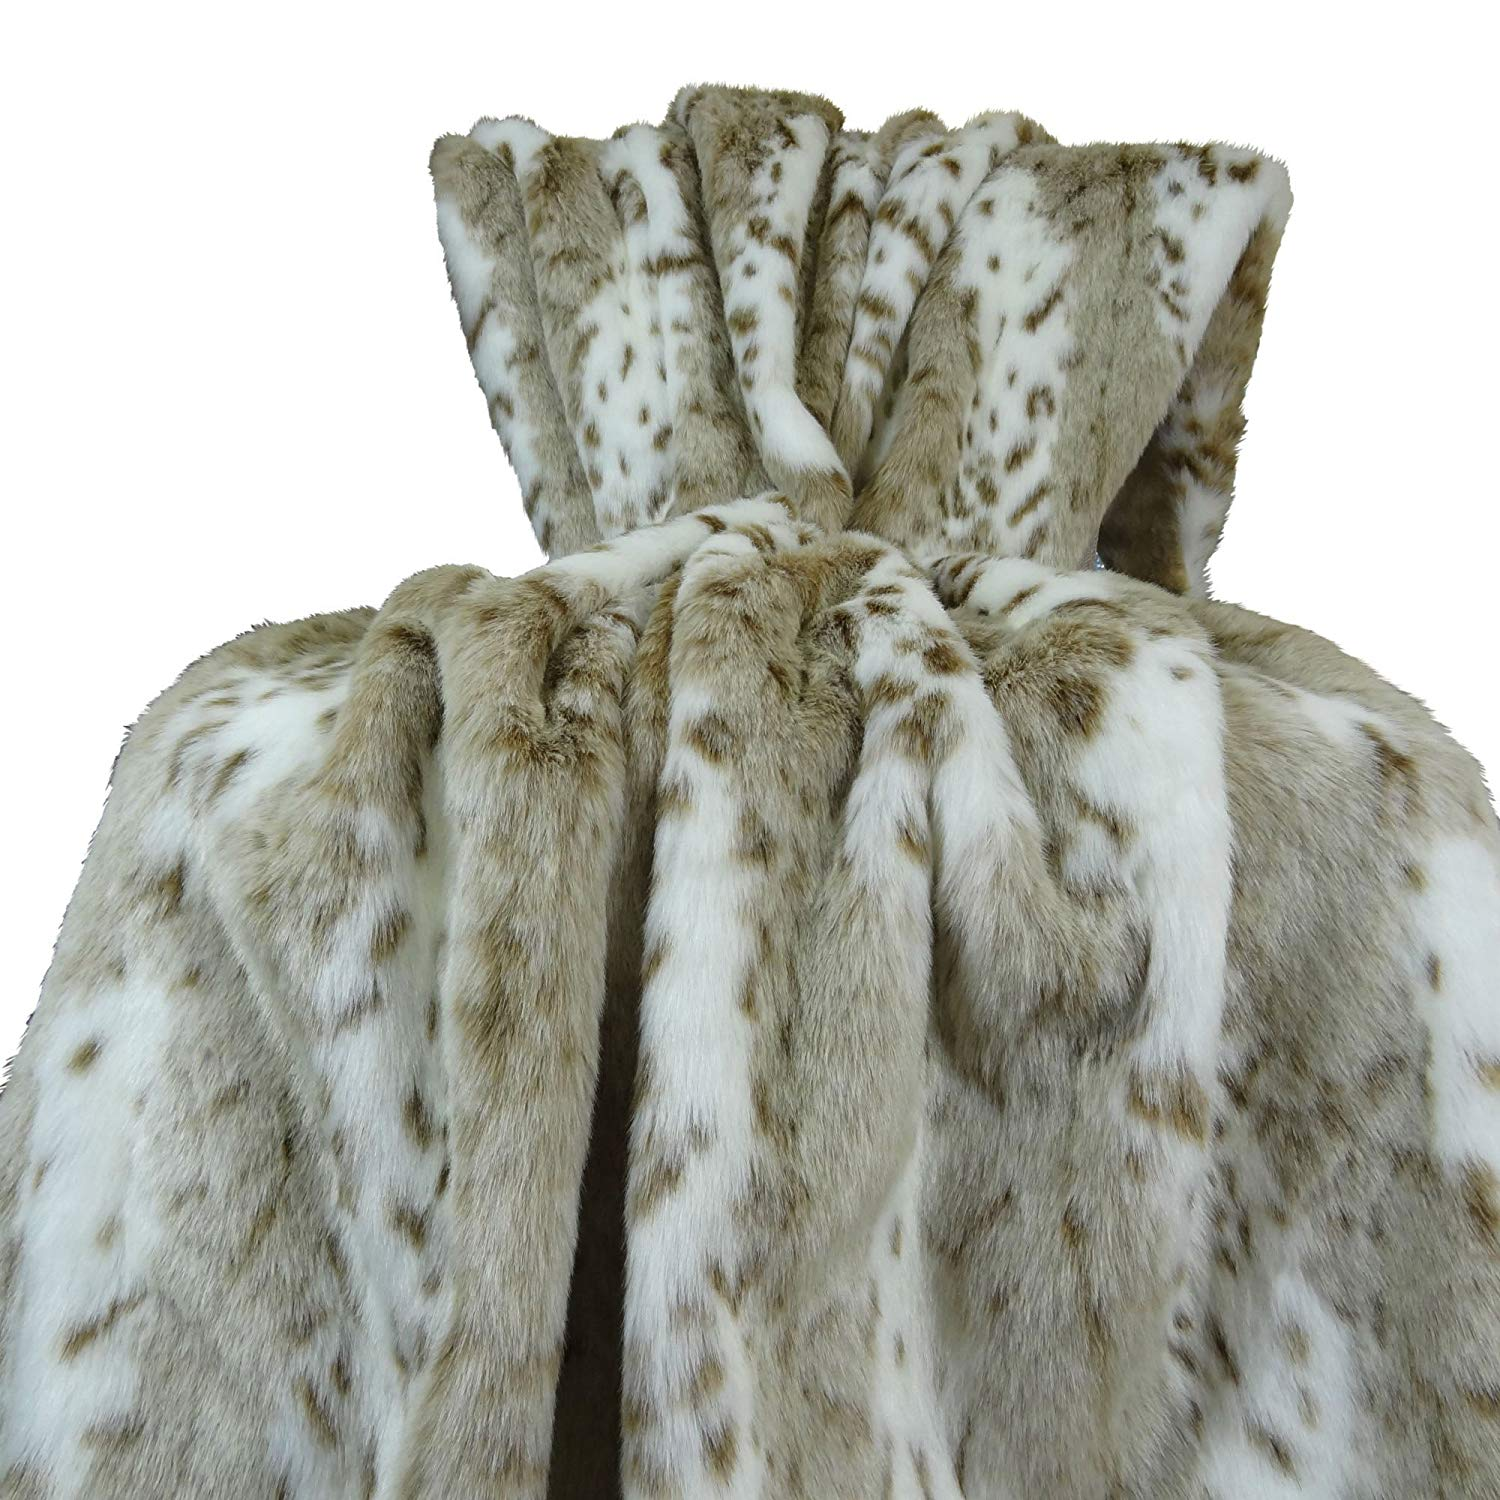 Thomas Collection Luxury white and taupe Siberian Leopard Faux Fur Throw Blanket & Bedspread - White Taupe Siberian Leopard Fur Throw Blanket - White Taupe Faux Fur Blanket, Handmade in US, 16431